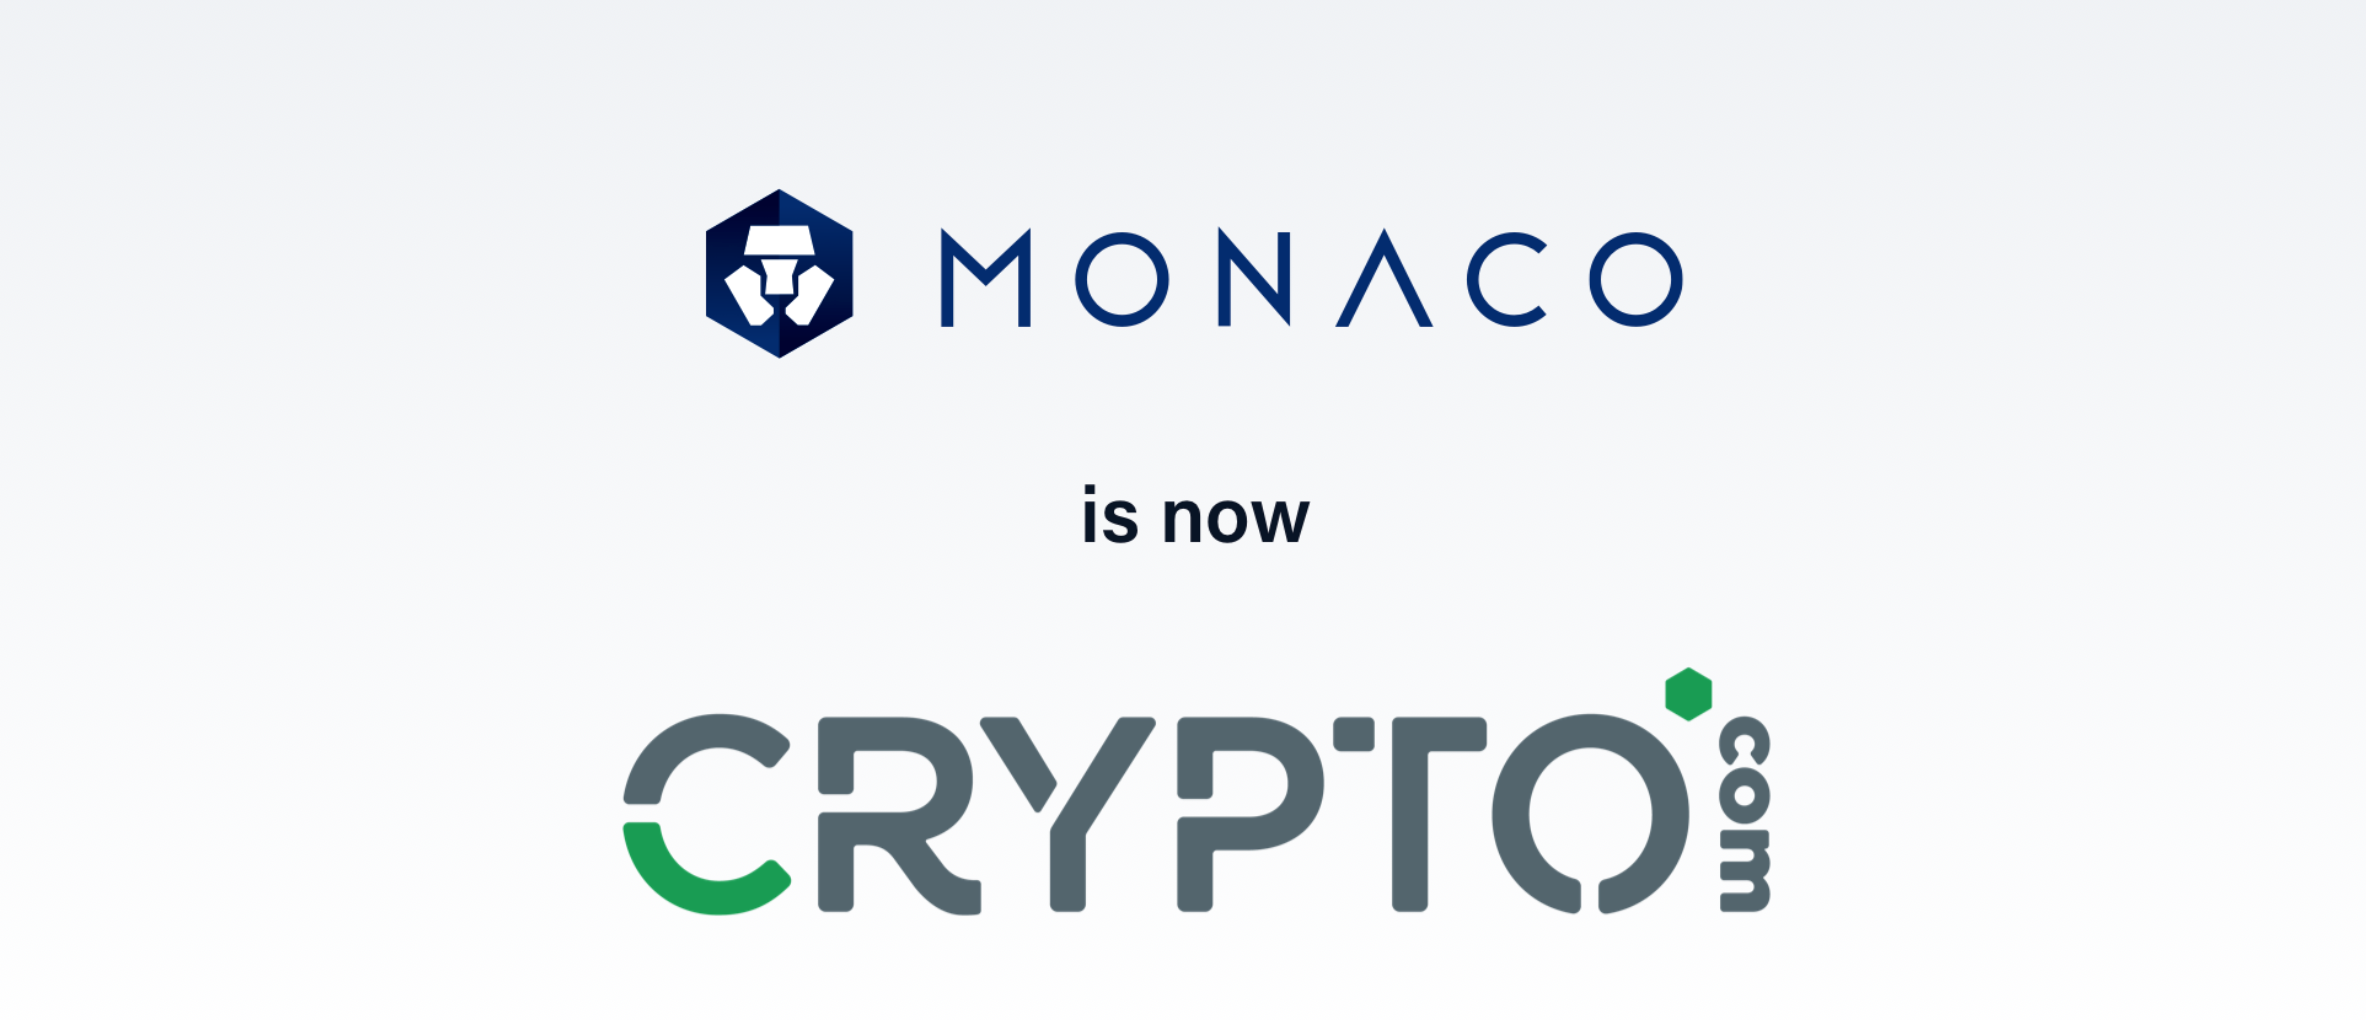 Monaco buys the crypto.com domain name for millions